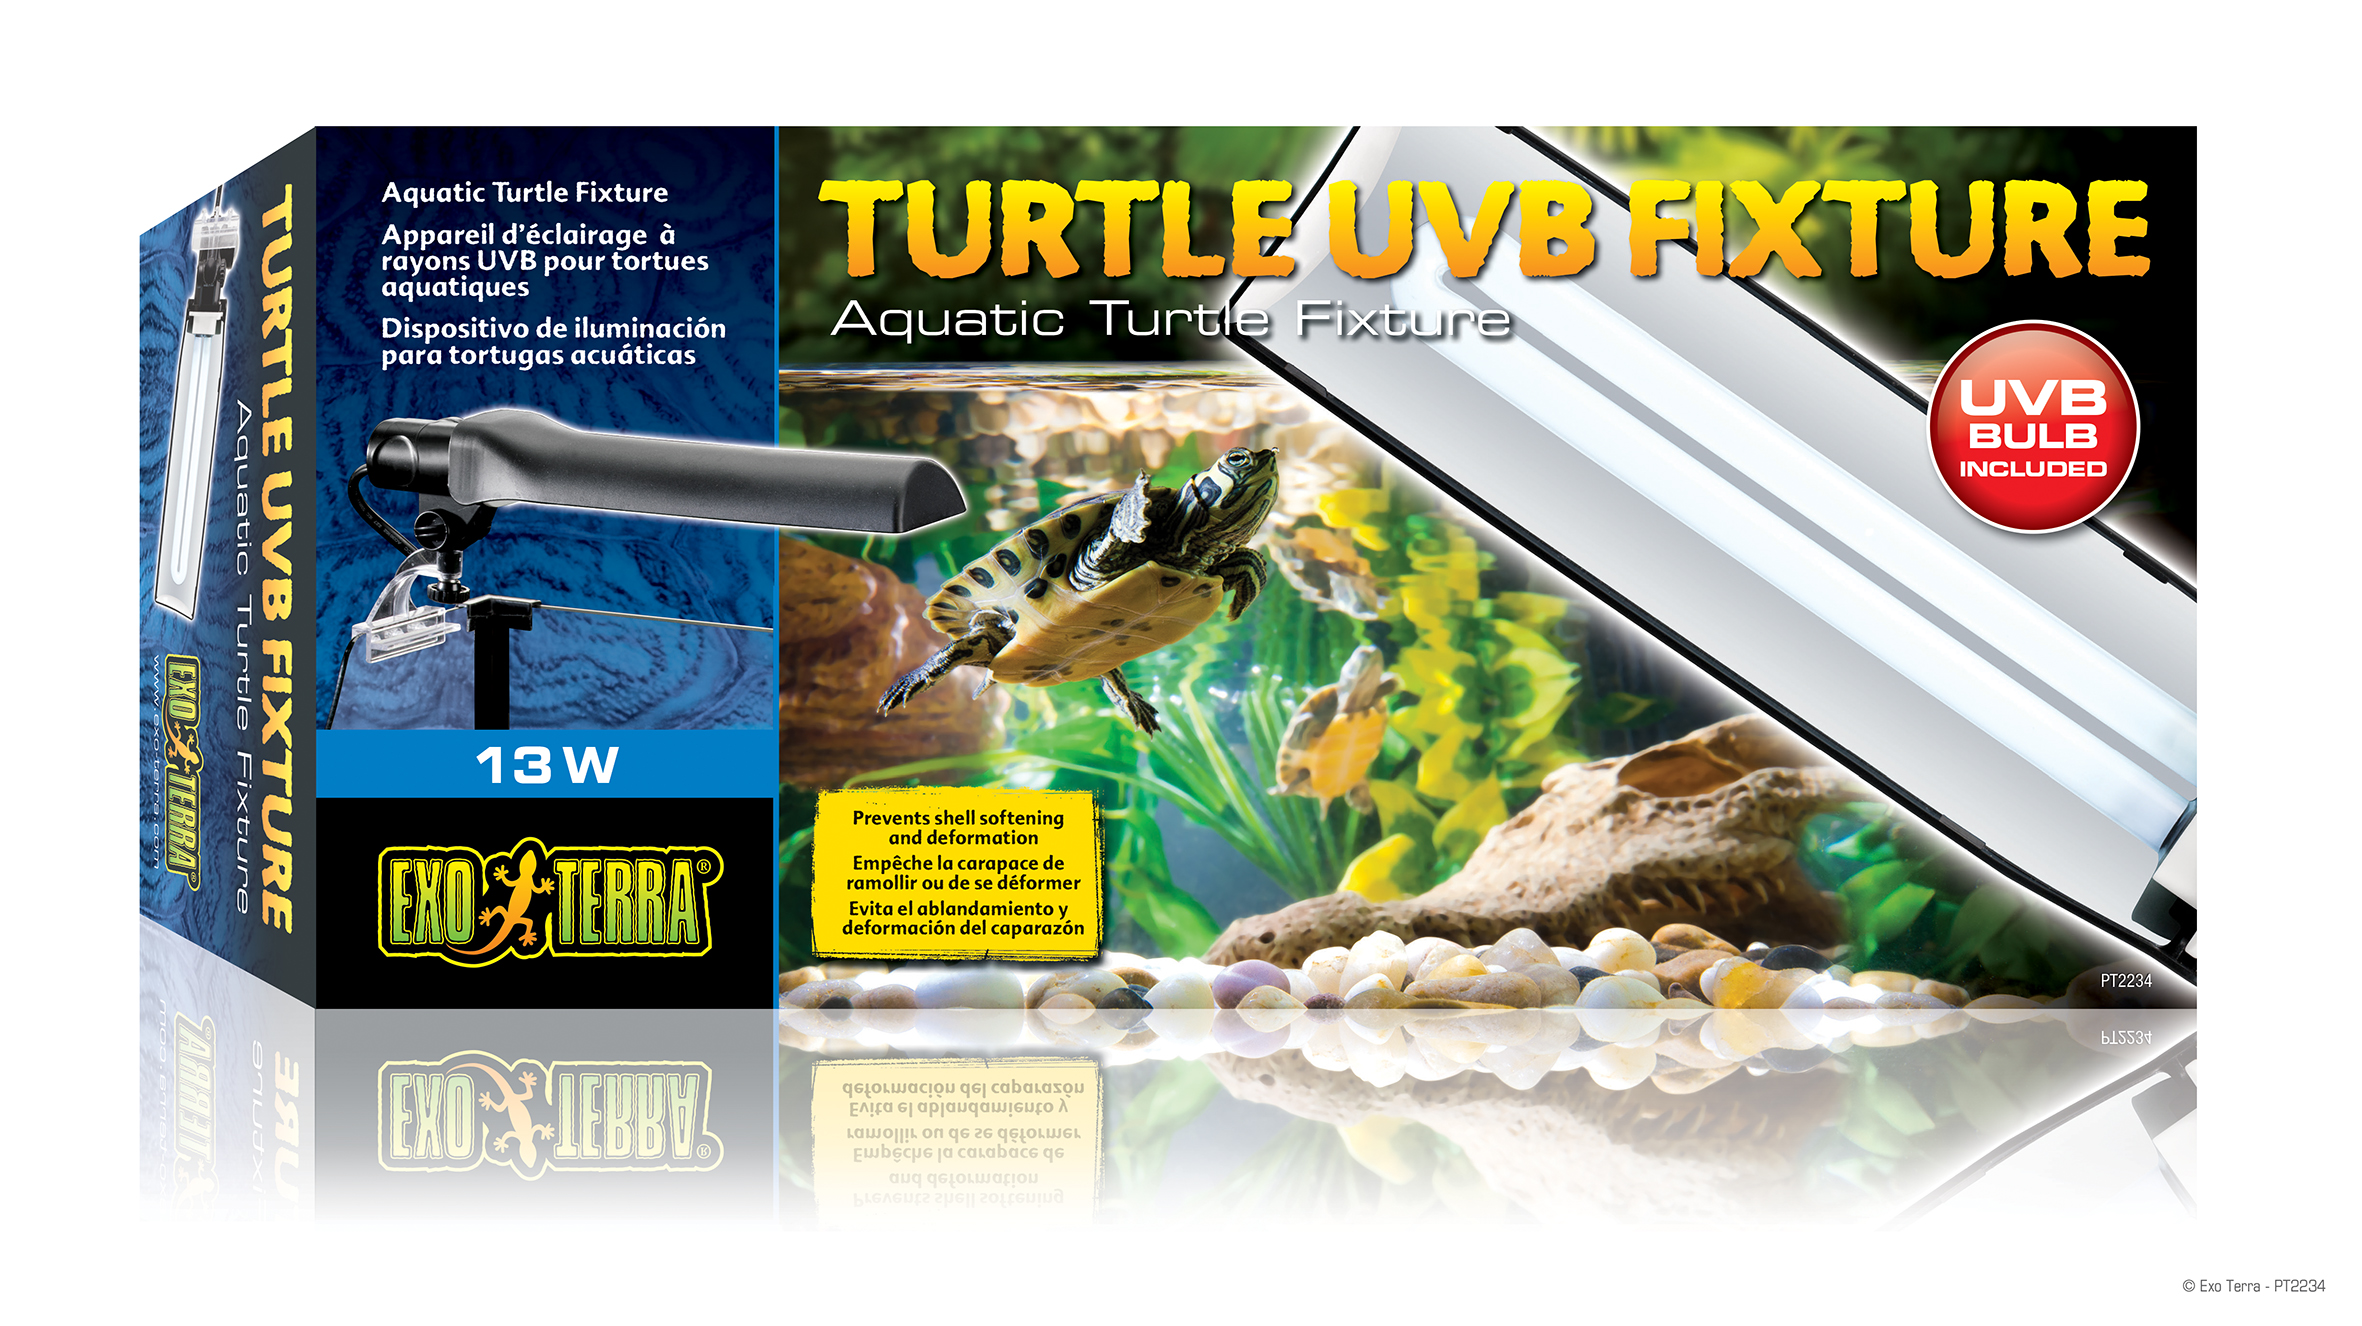 Exo terra turtle uvb fixture aquatic turtle fixture adhesive support base arubaitofo Choice Image